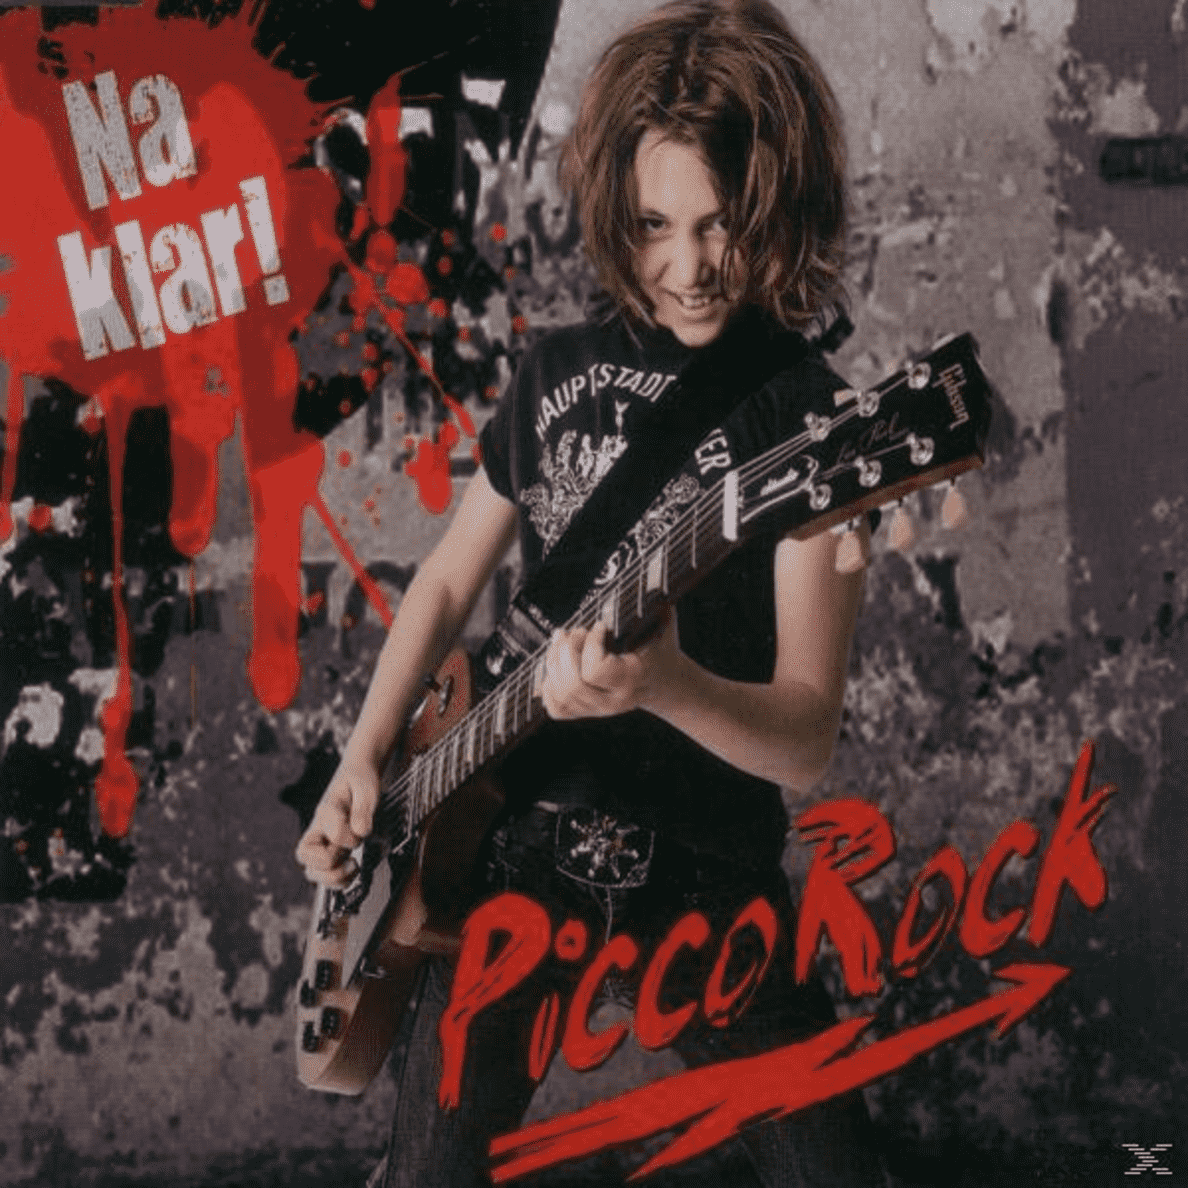 Picco Rock - Na klar! - (Maxi Single CD)